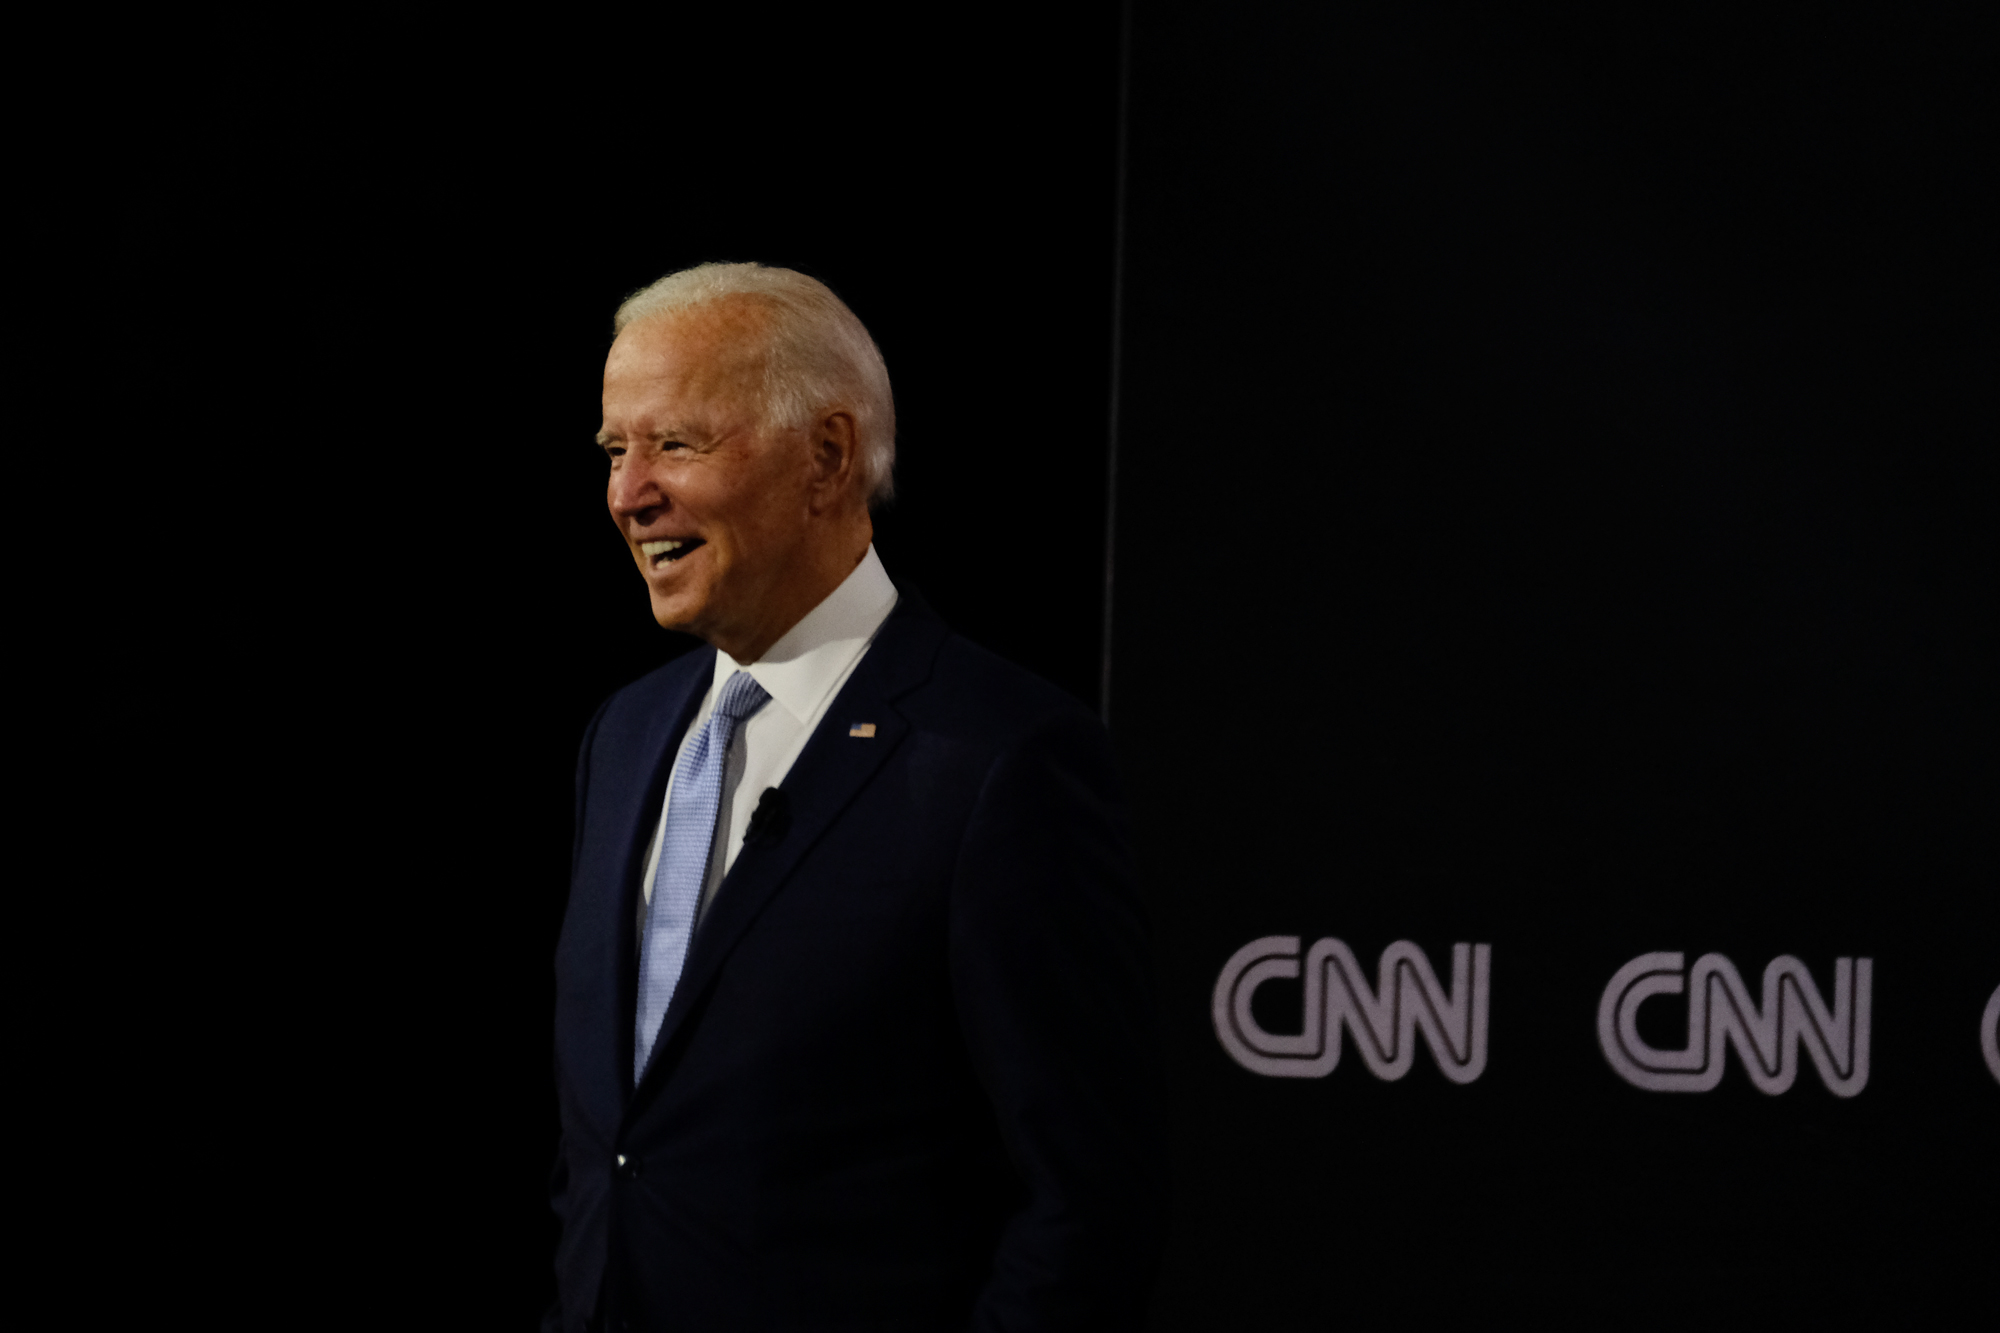 Biden to take post-debate campaign swing through Ohio and Pennsylvania